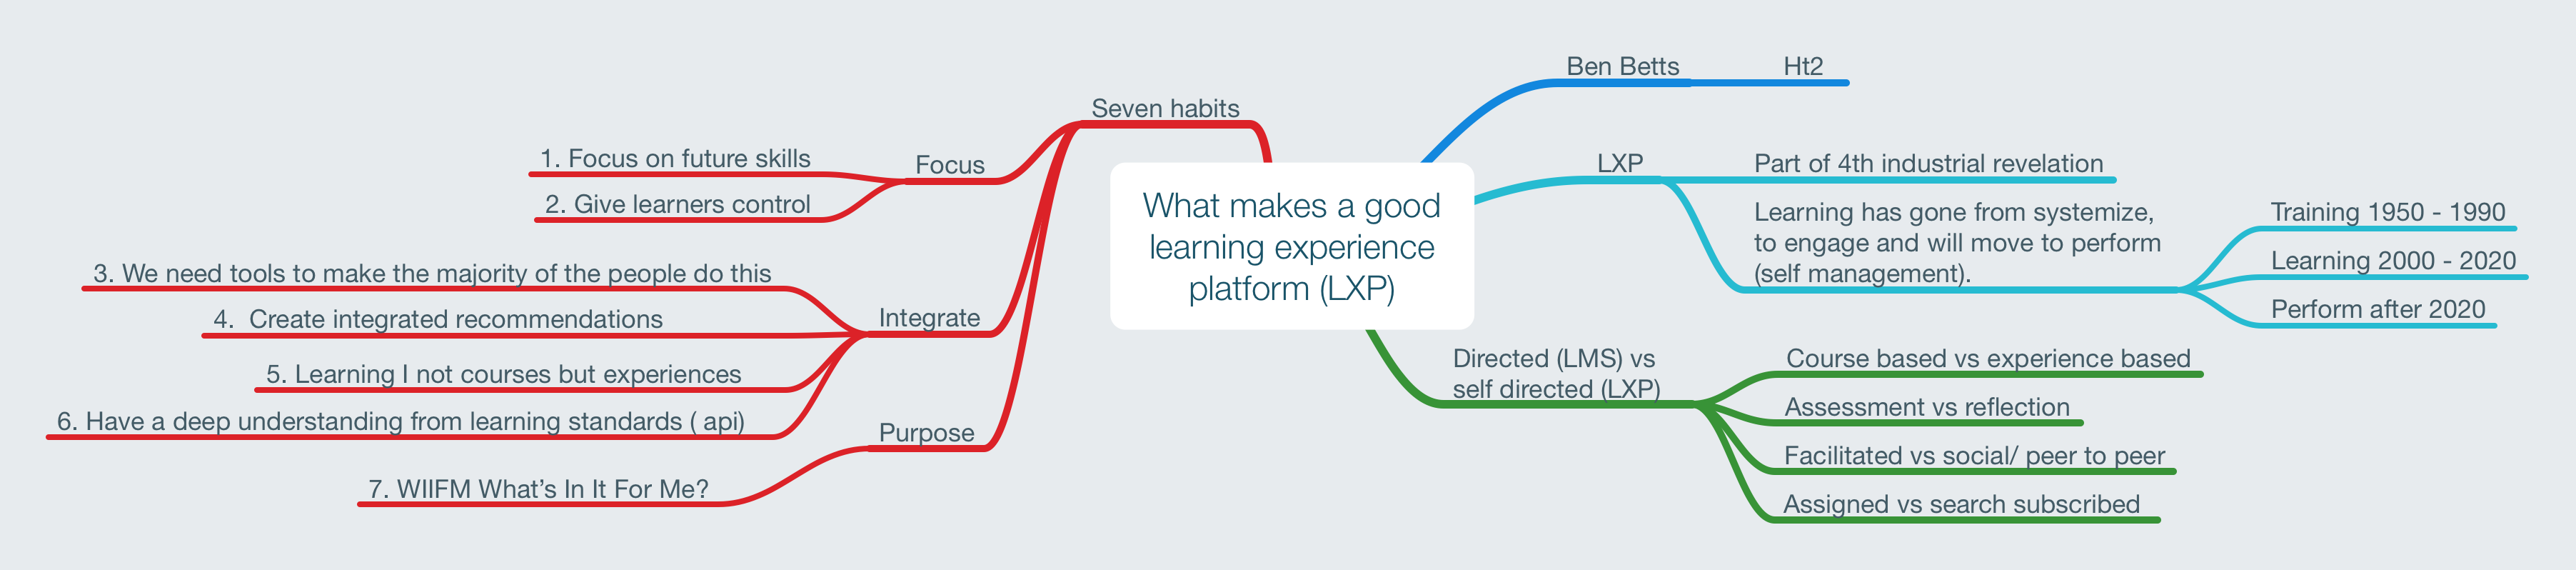 What makes a good learning experience platform (LXP)